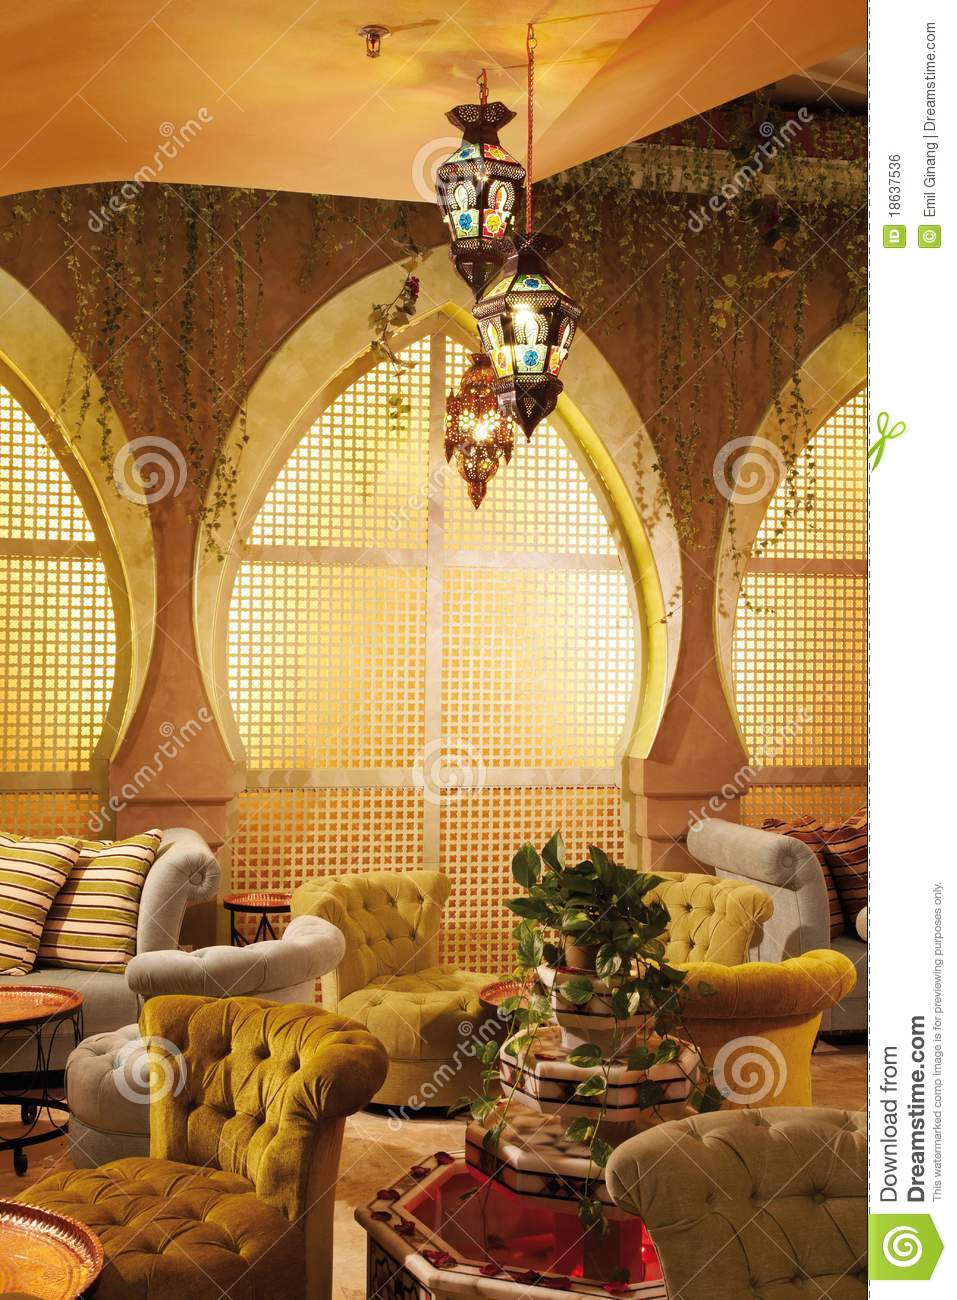 sofa tables for living room paint colors with brick fireplace arabic interior stock photo. image of living, decorations ...